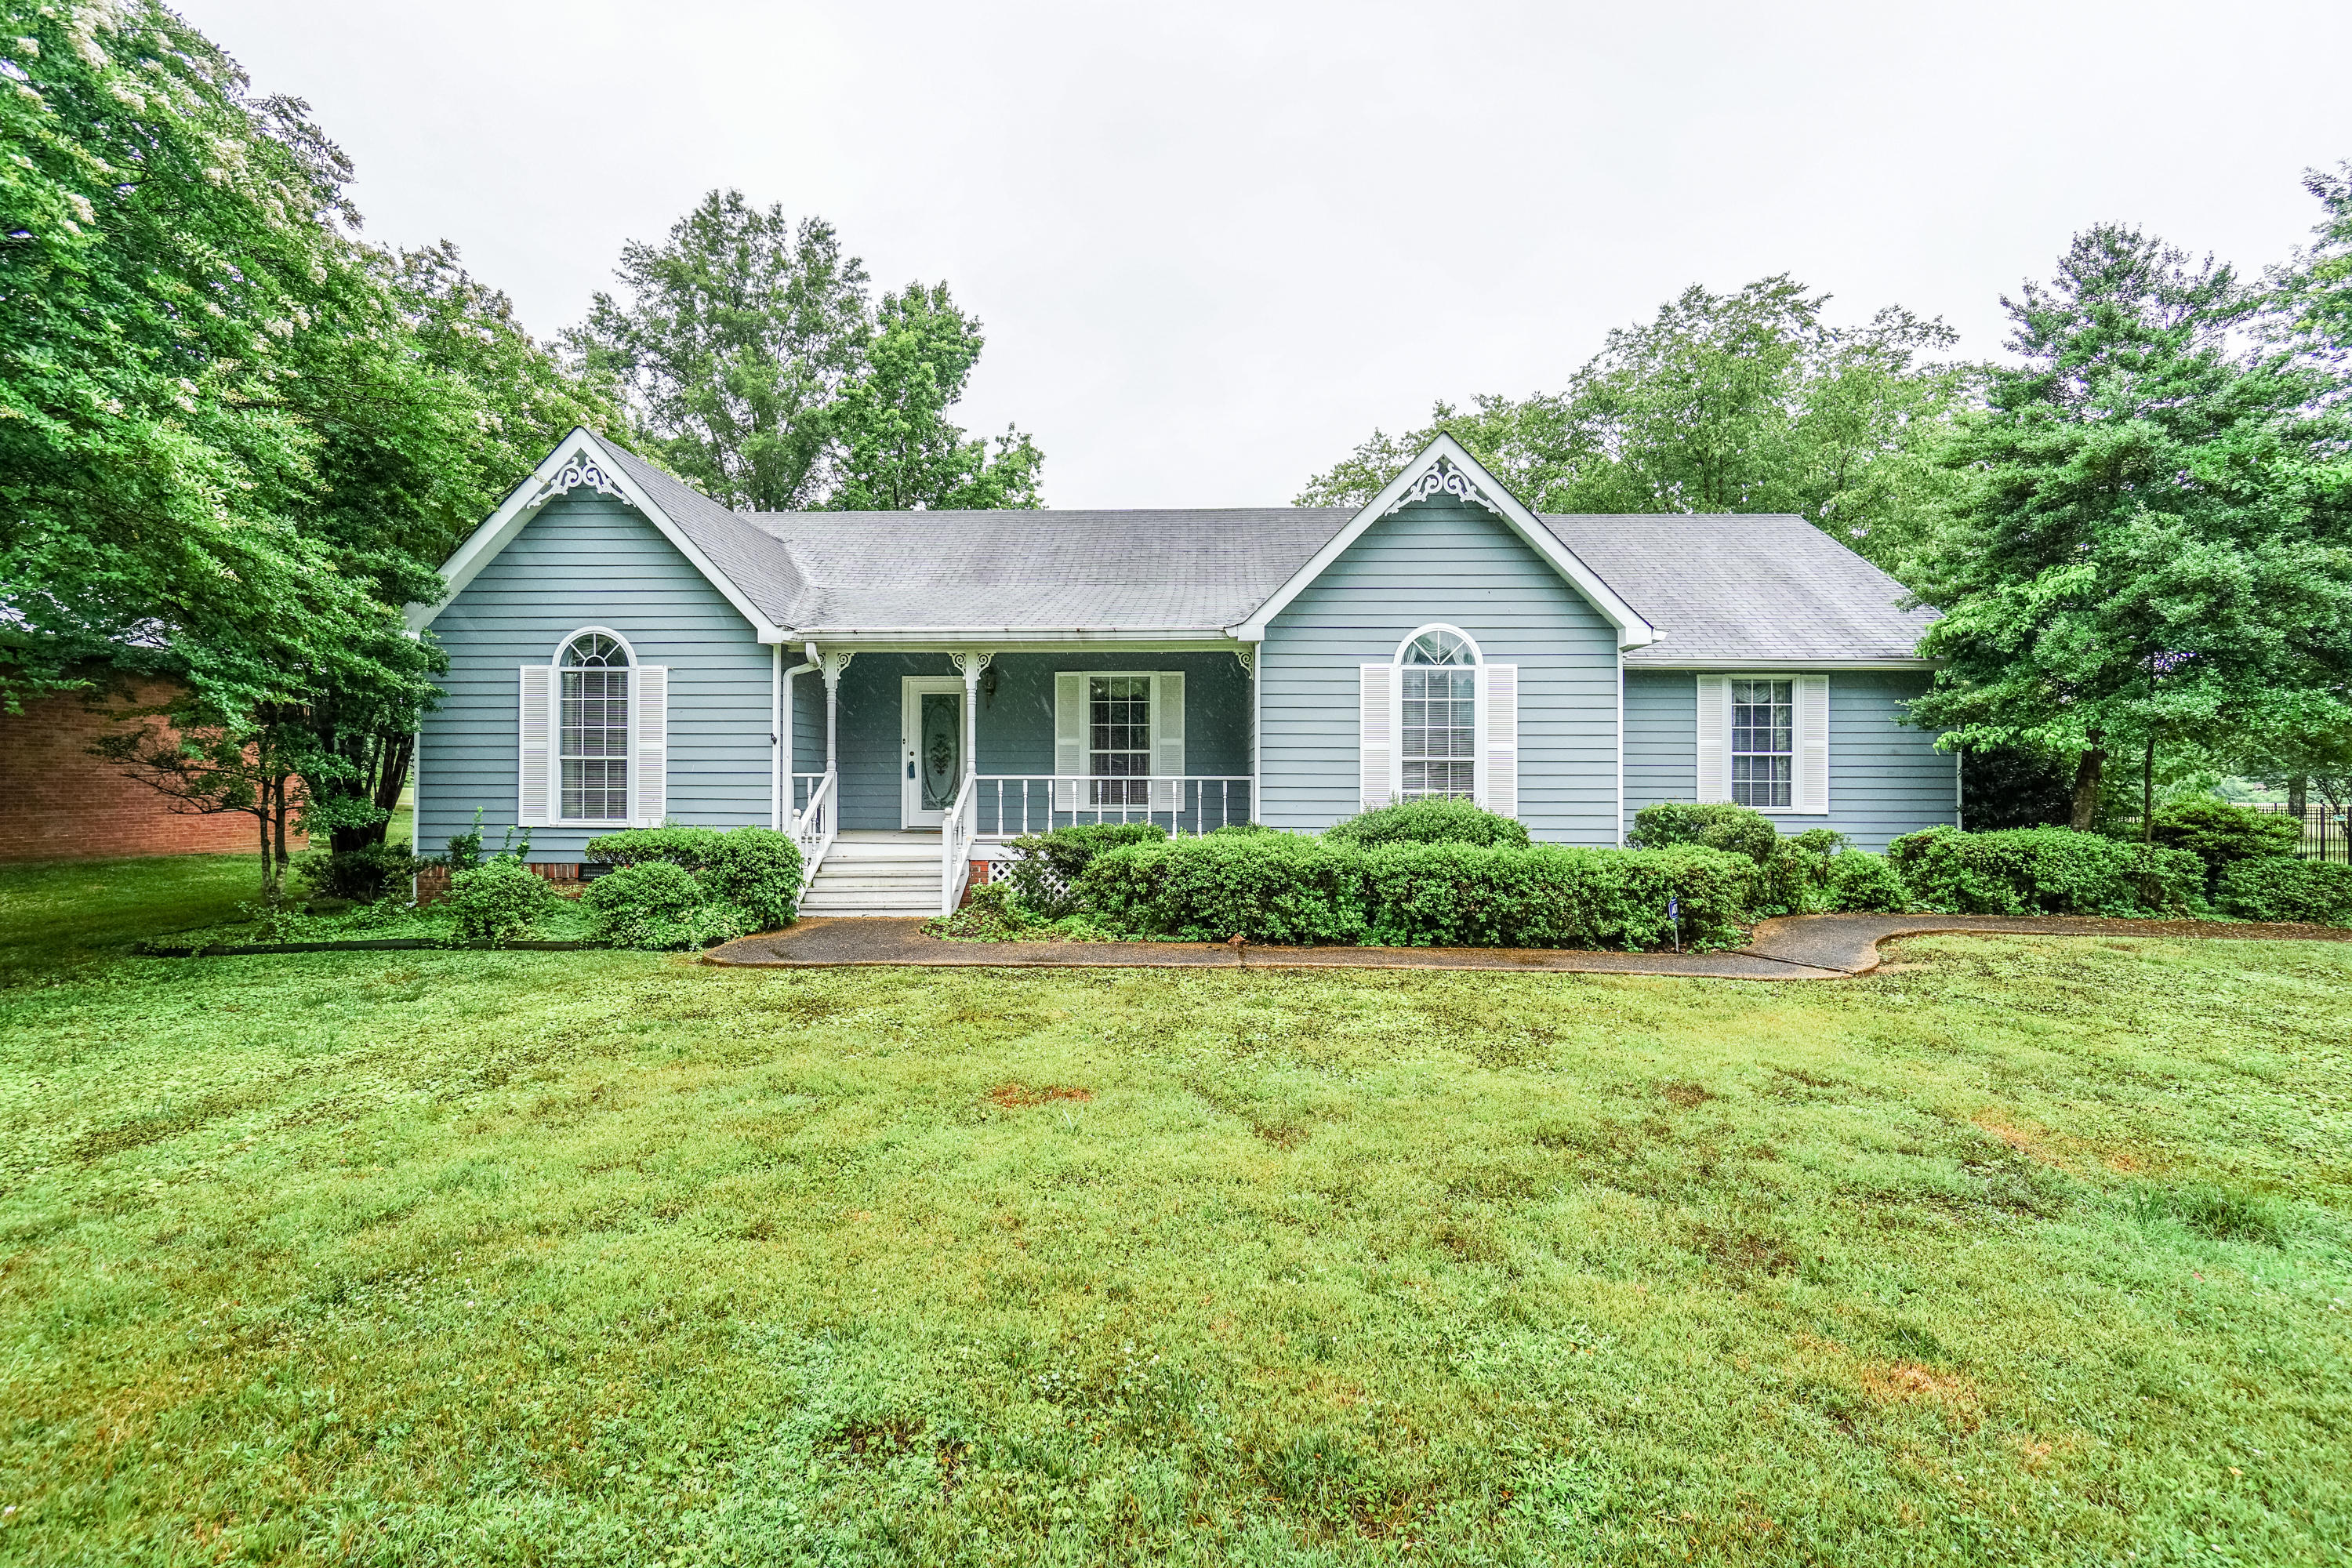 438 Valleybrook Rd, Hixson, TN 37343